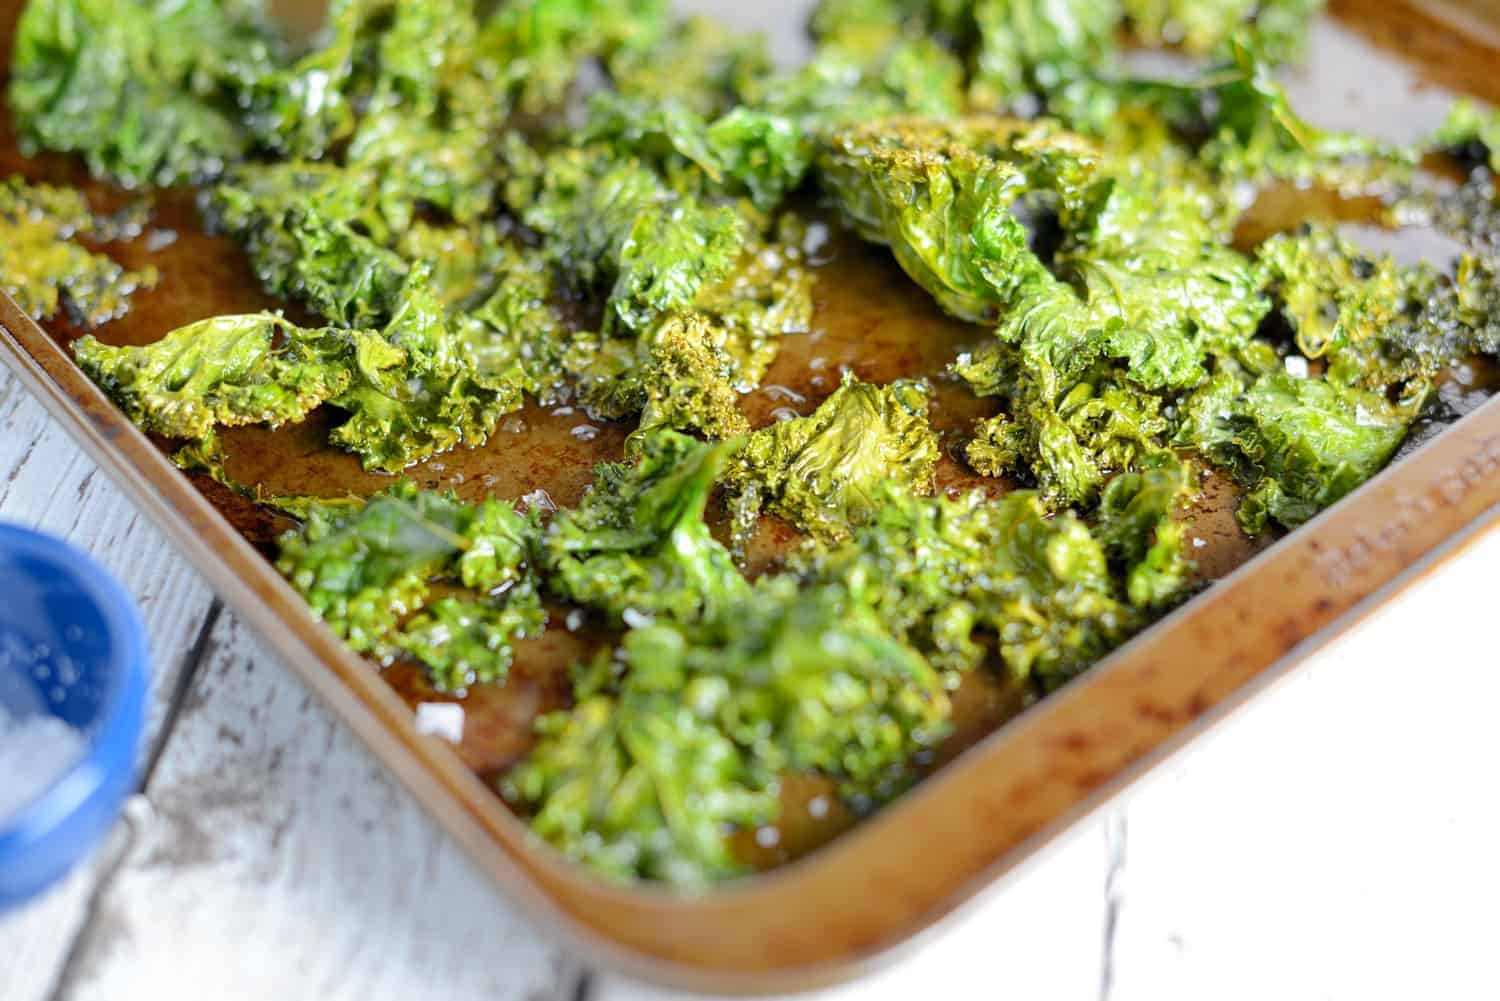 Kale Chips Recipe- olive oil, sea salt and 3 other creative add-ins! A tasty, easy, and healthy alternative to potato chips.